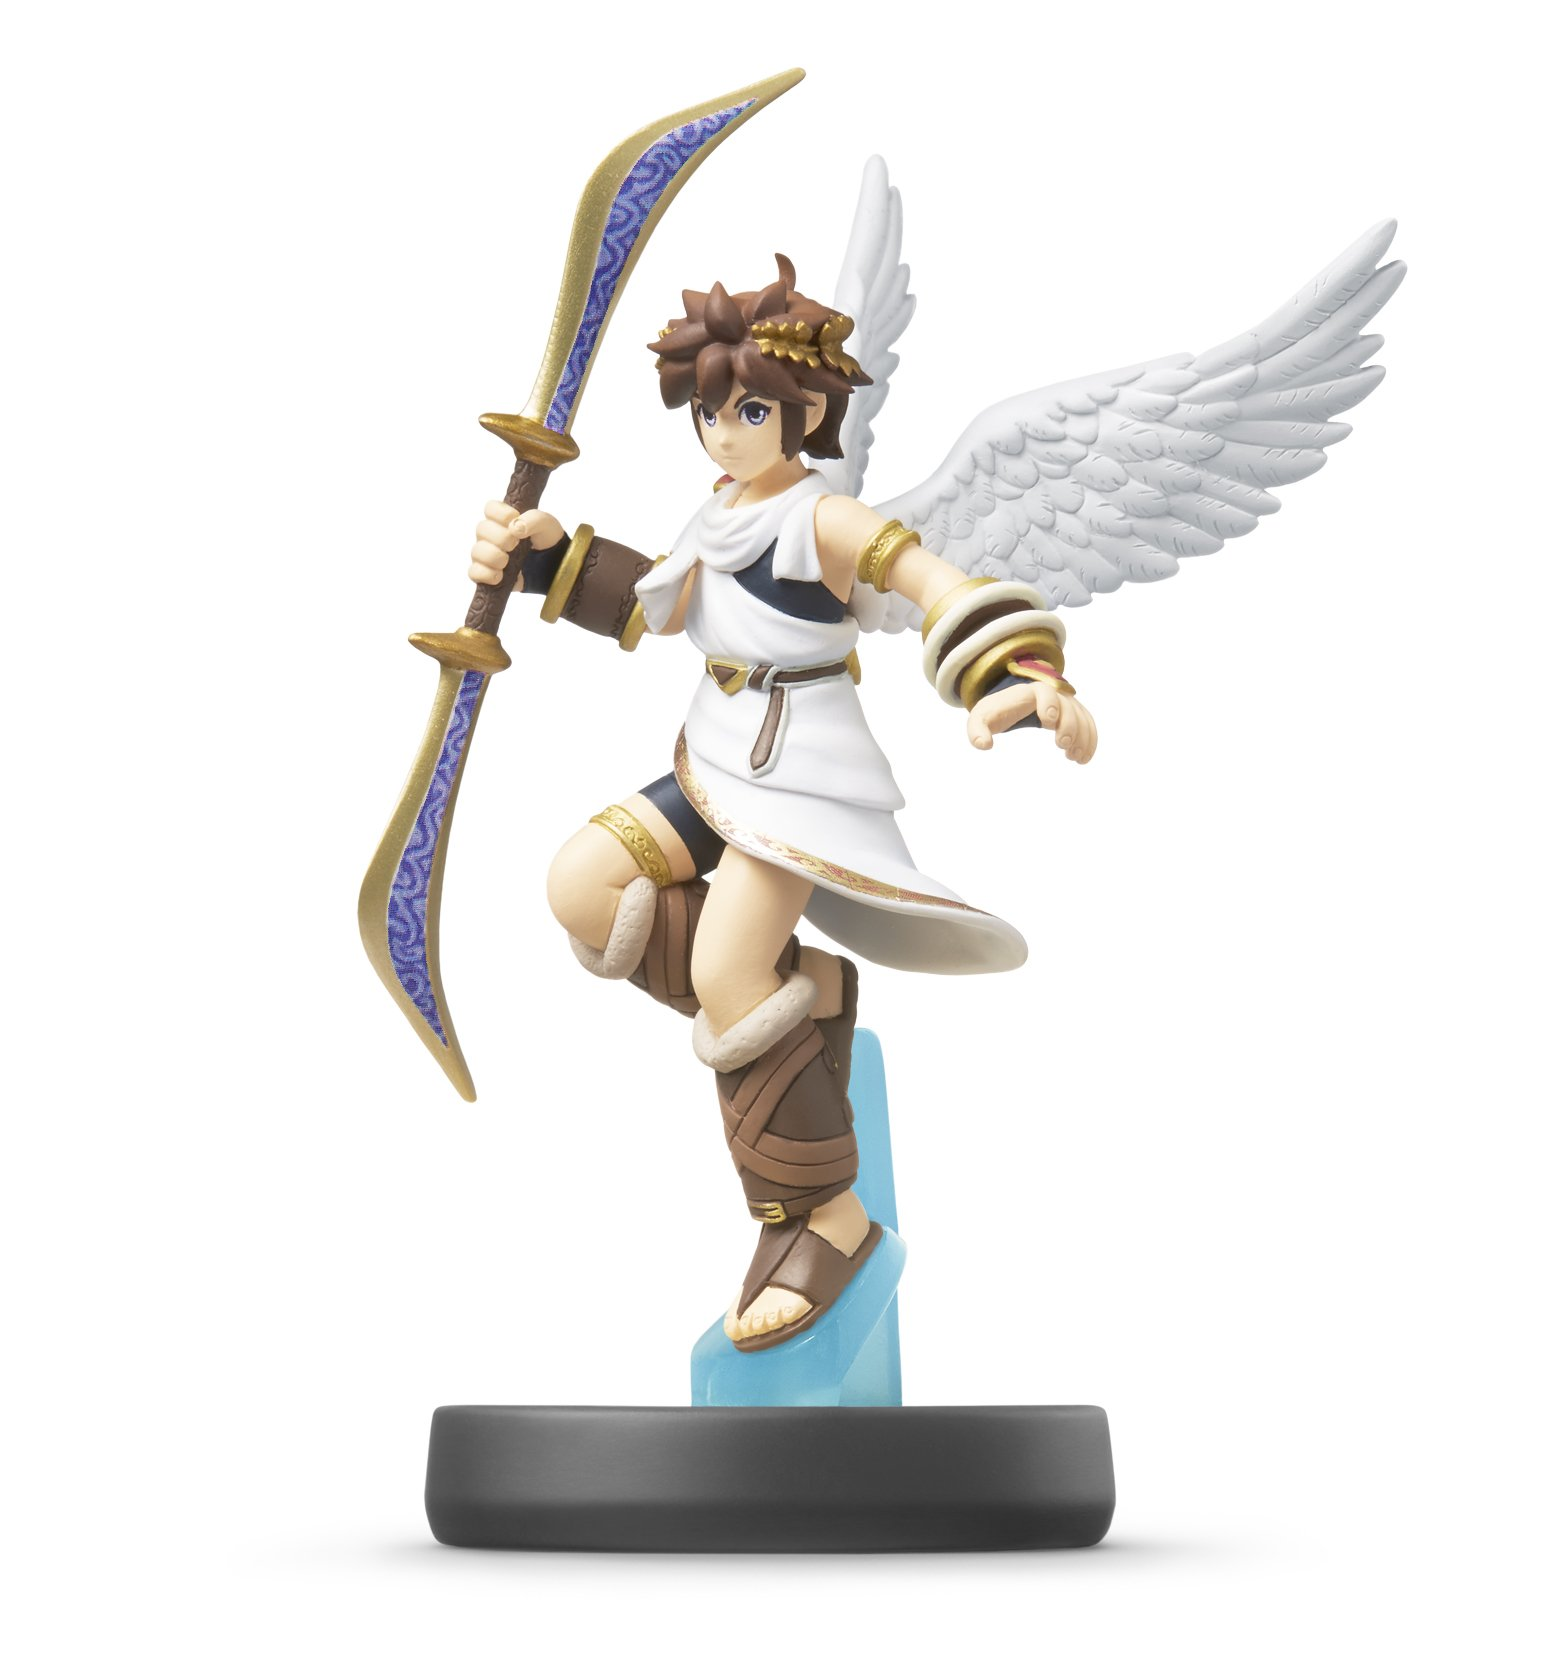 Pit amiibo (Super Smash Bros Series)